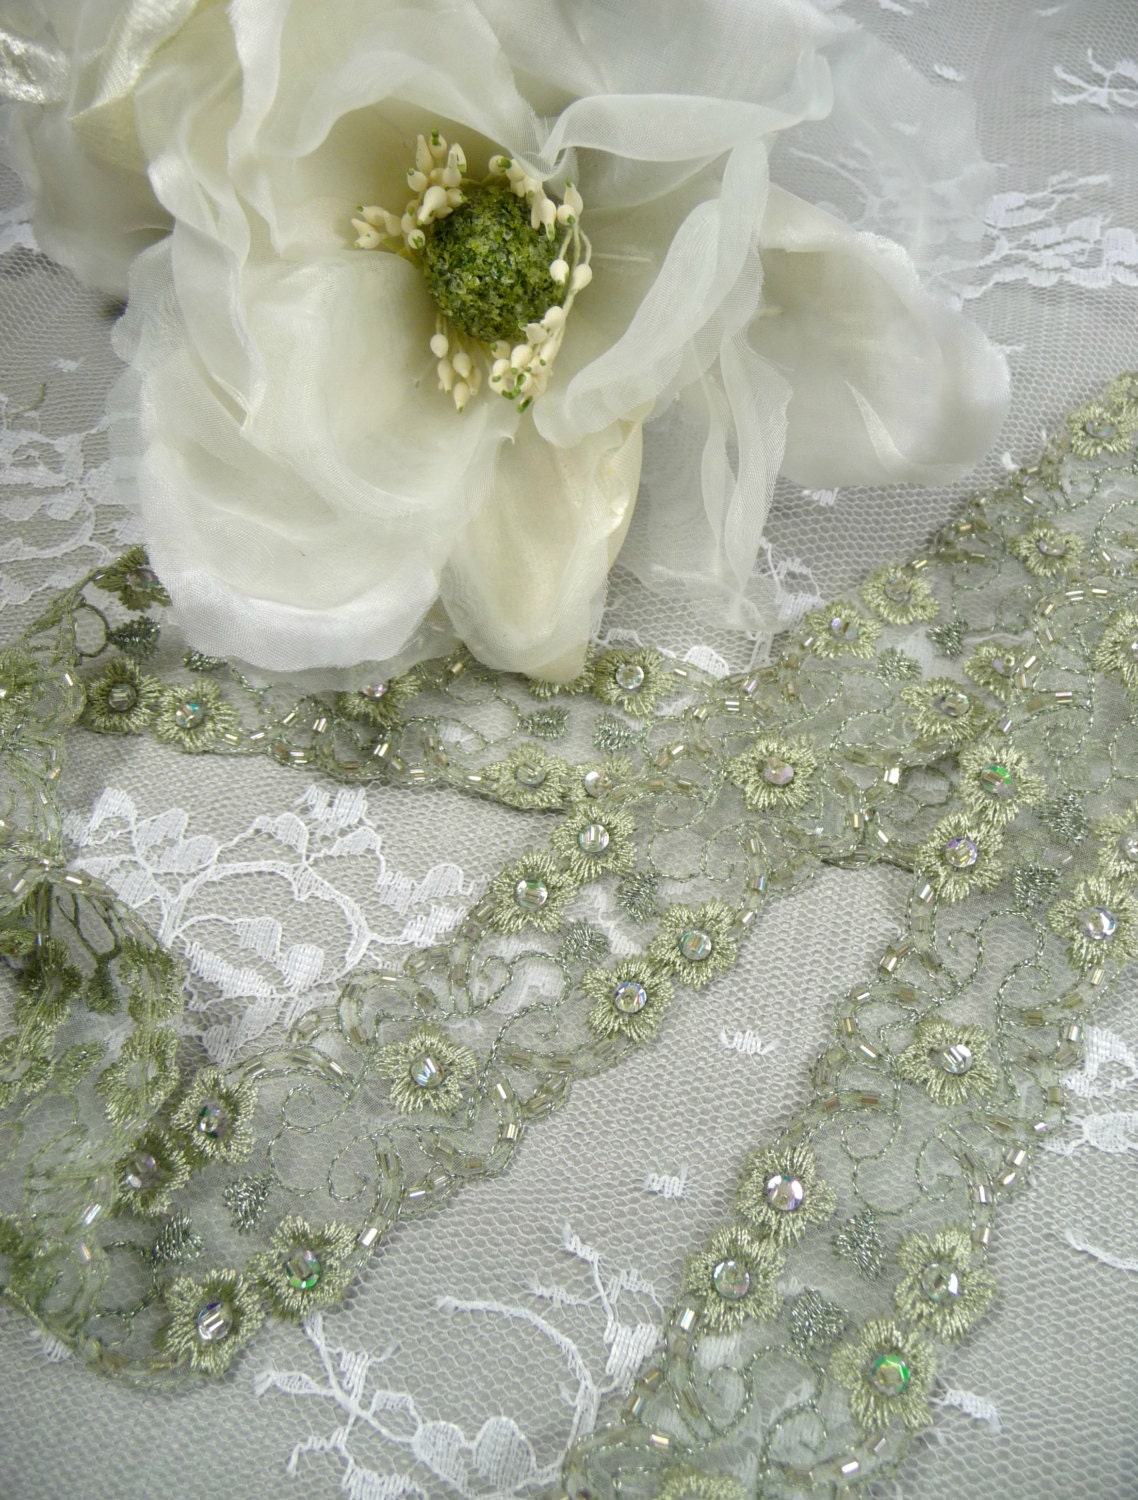 Beaded Trim Pale Sage Green Embroidery Sequins Bugle Beads